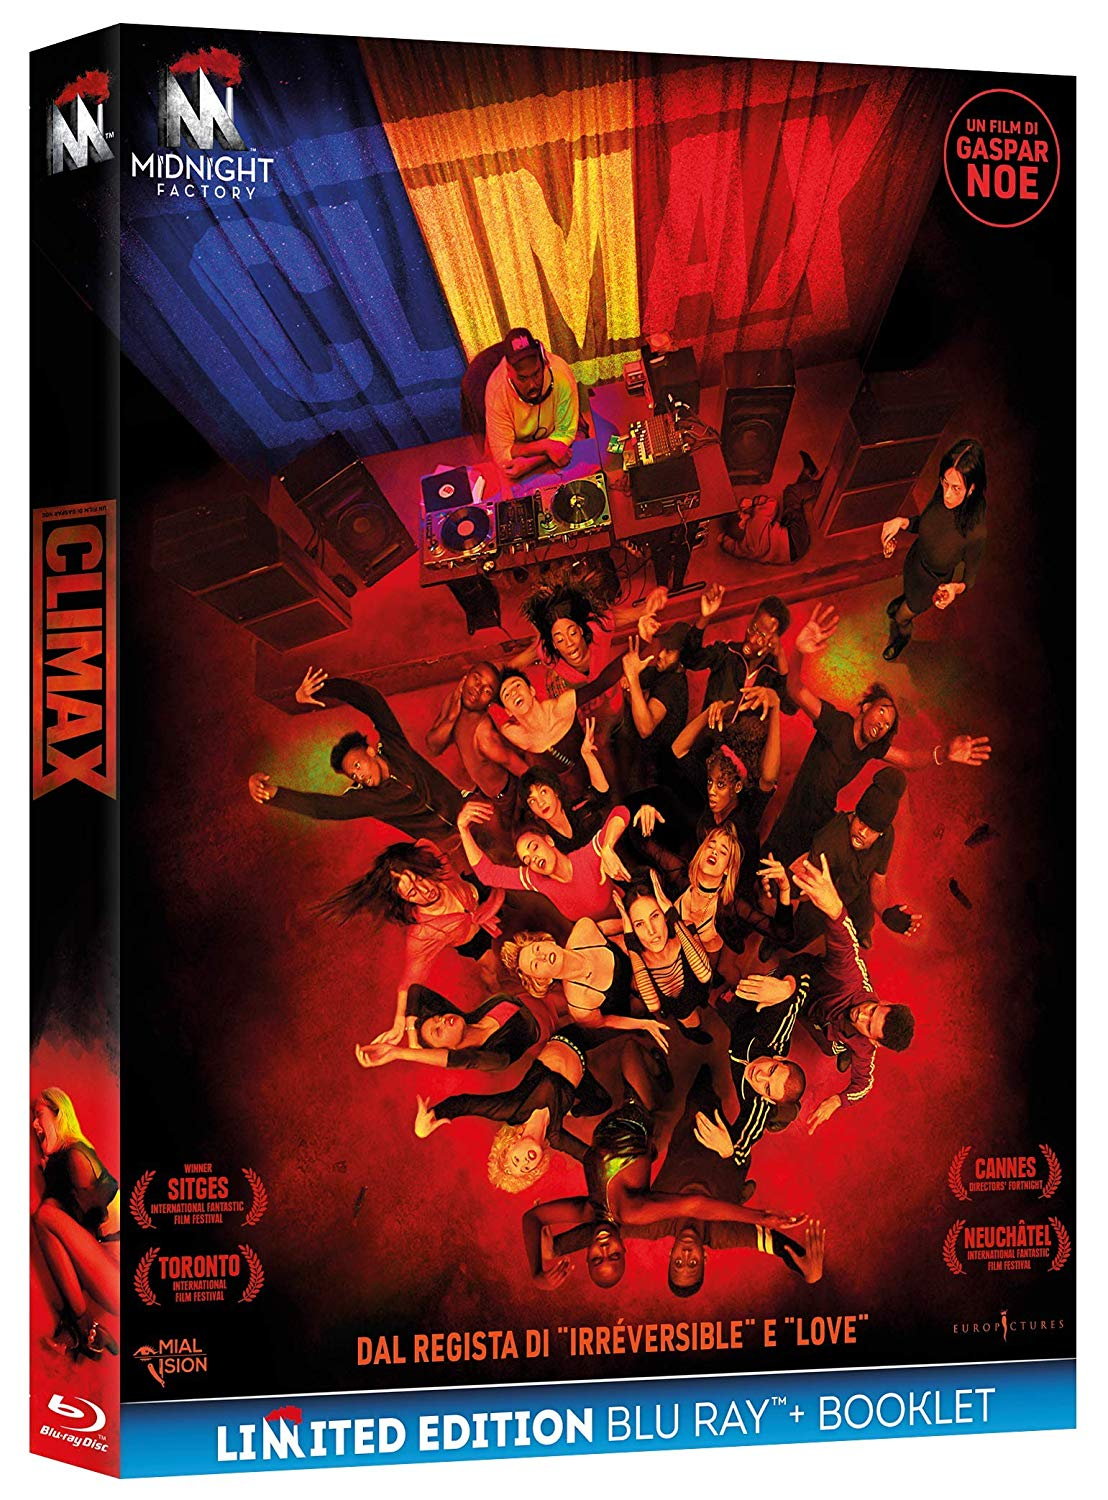 CLIMAX (LTD) (BLU-RAY+BOOKLET)